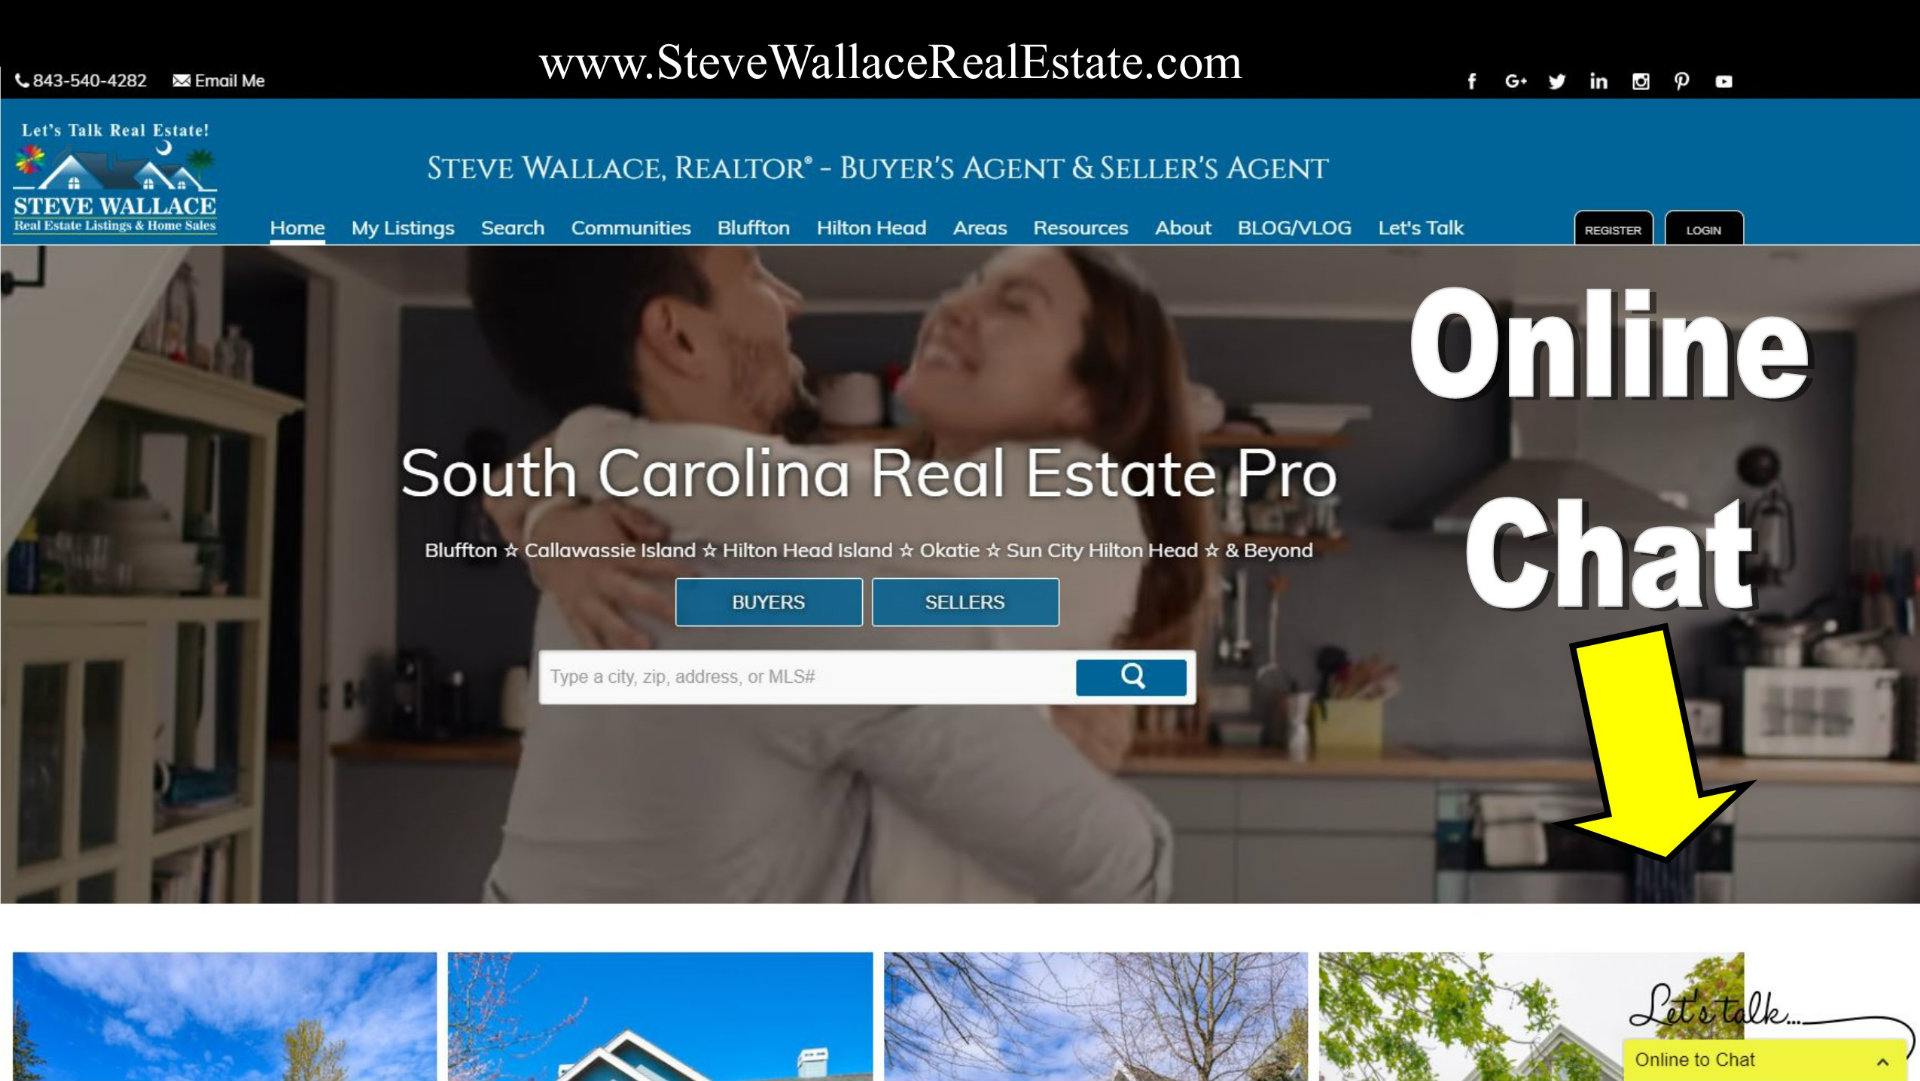 tawk, talk, to, south carolina real estate, agent, bluffton, chat